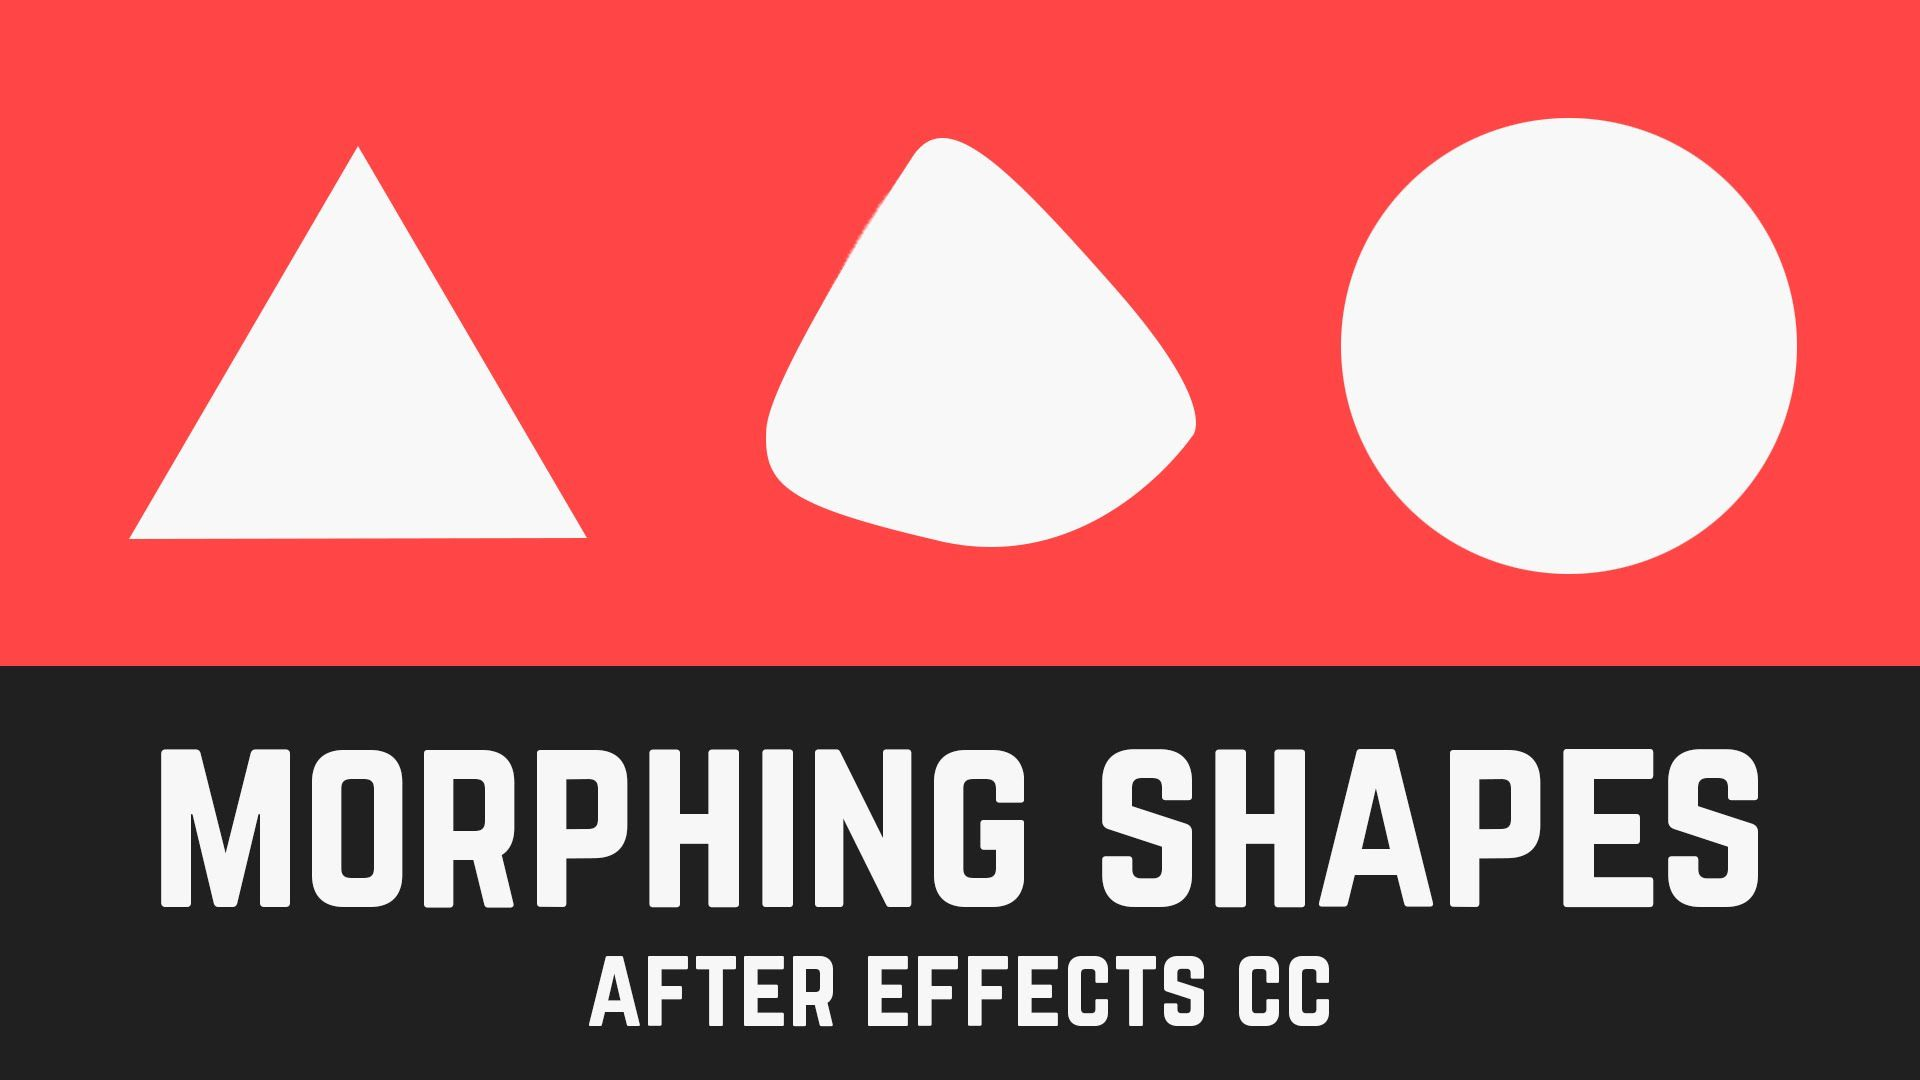 T001 shape morphing in after effects cc intermediate ae in this after effects motion graphic tutorial we are going to be taking a look at how to morph png objects in after effects we utilize auto tracing and baditri Image collections